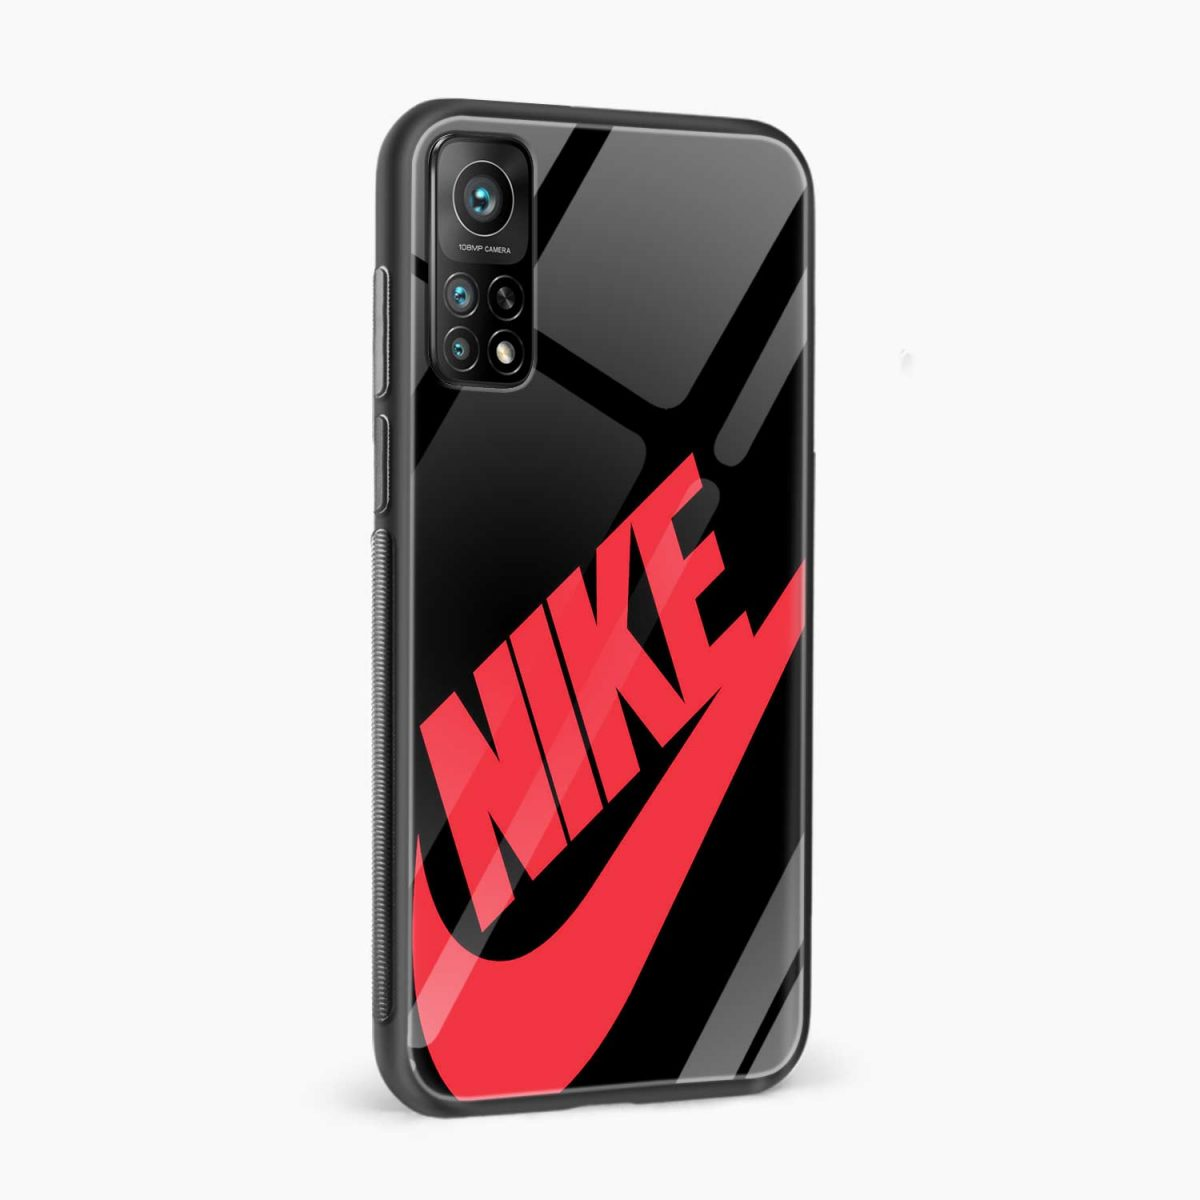 big red nike xiaomi mi 10t pro back cover side view